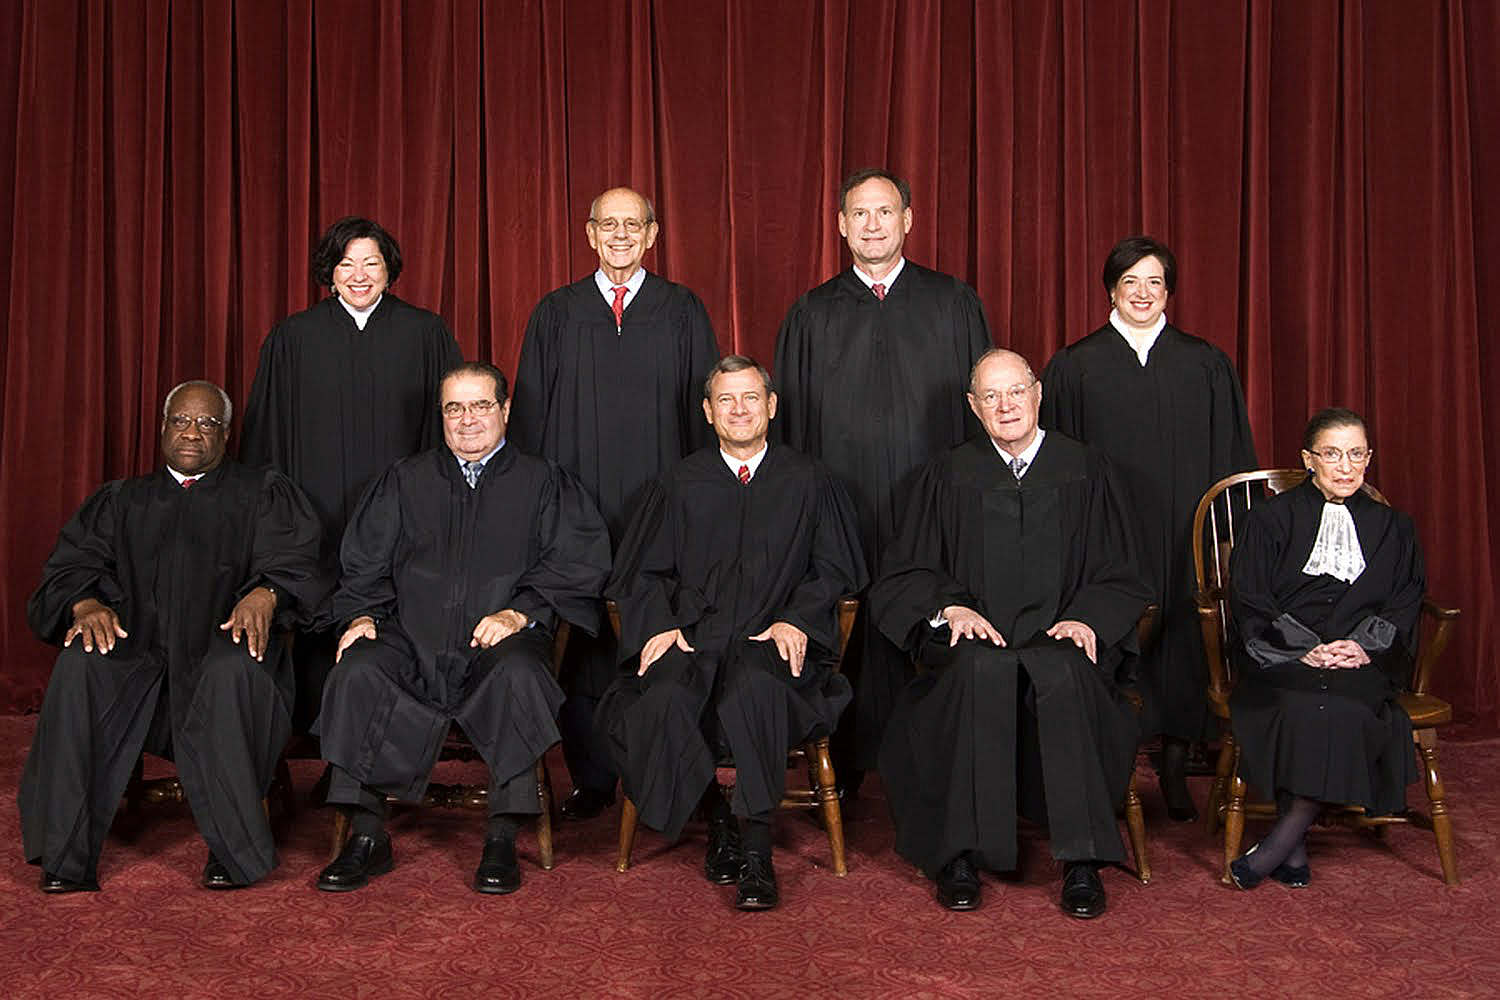 (photo credit:Steve Petteway, Collection of the Supreme Court of the United States - Roberts Court (2010-) - The Oyez Project)